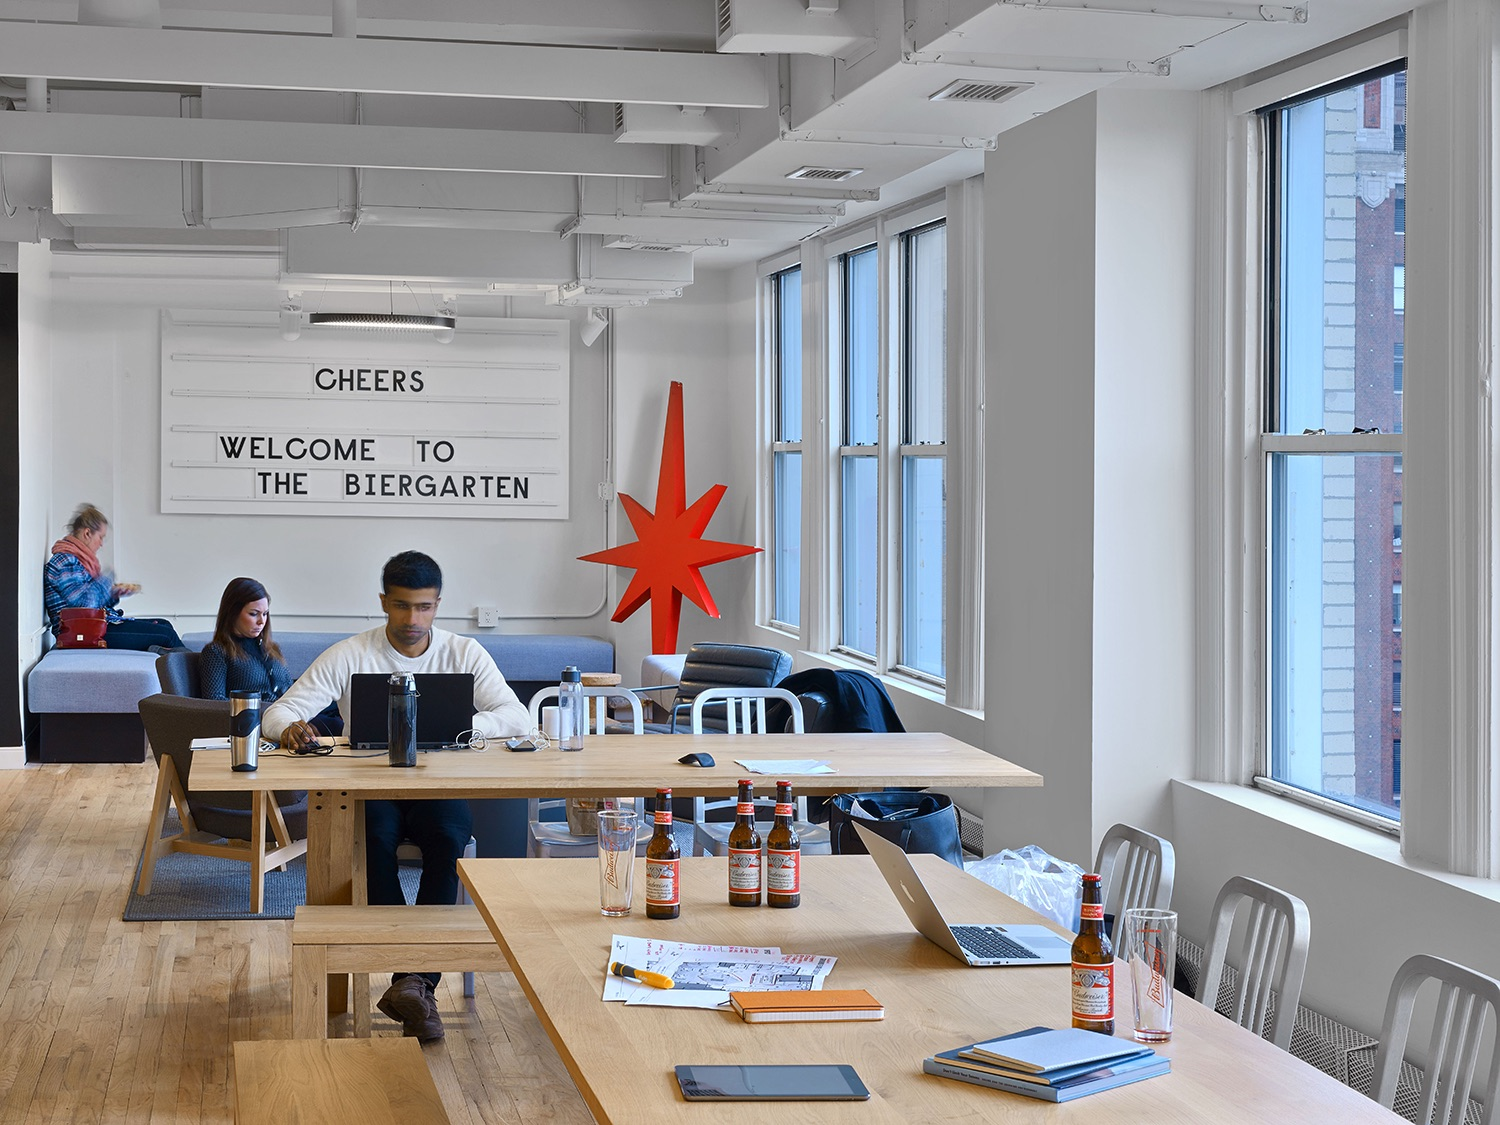 anheuser-busch-nyc-office-3